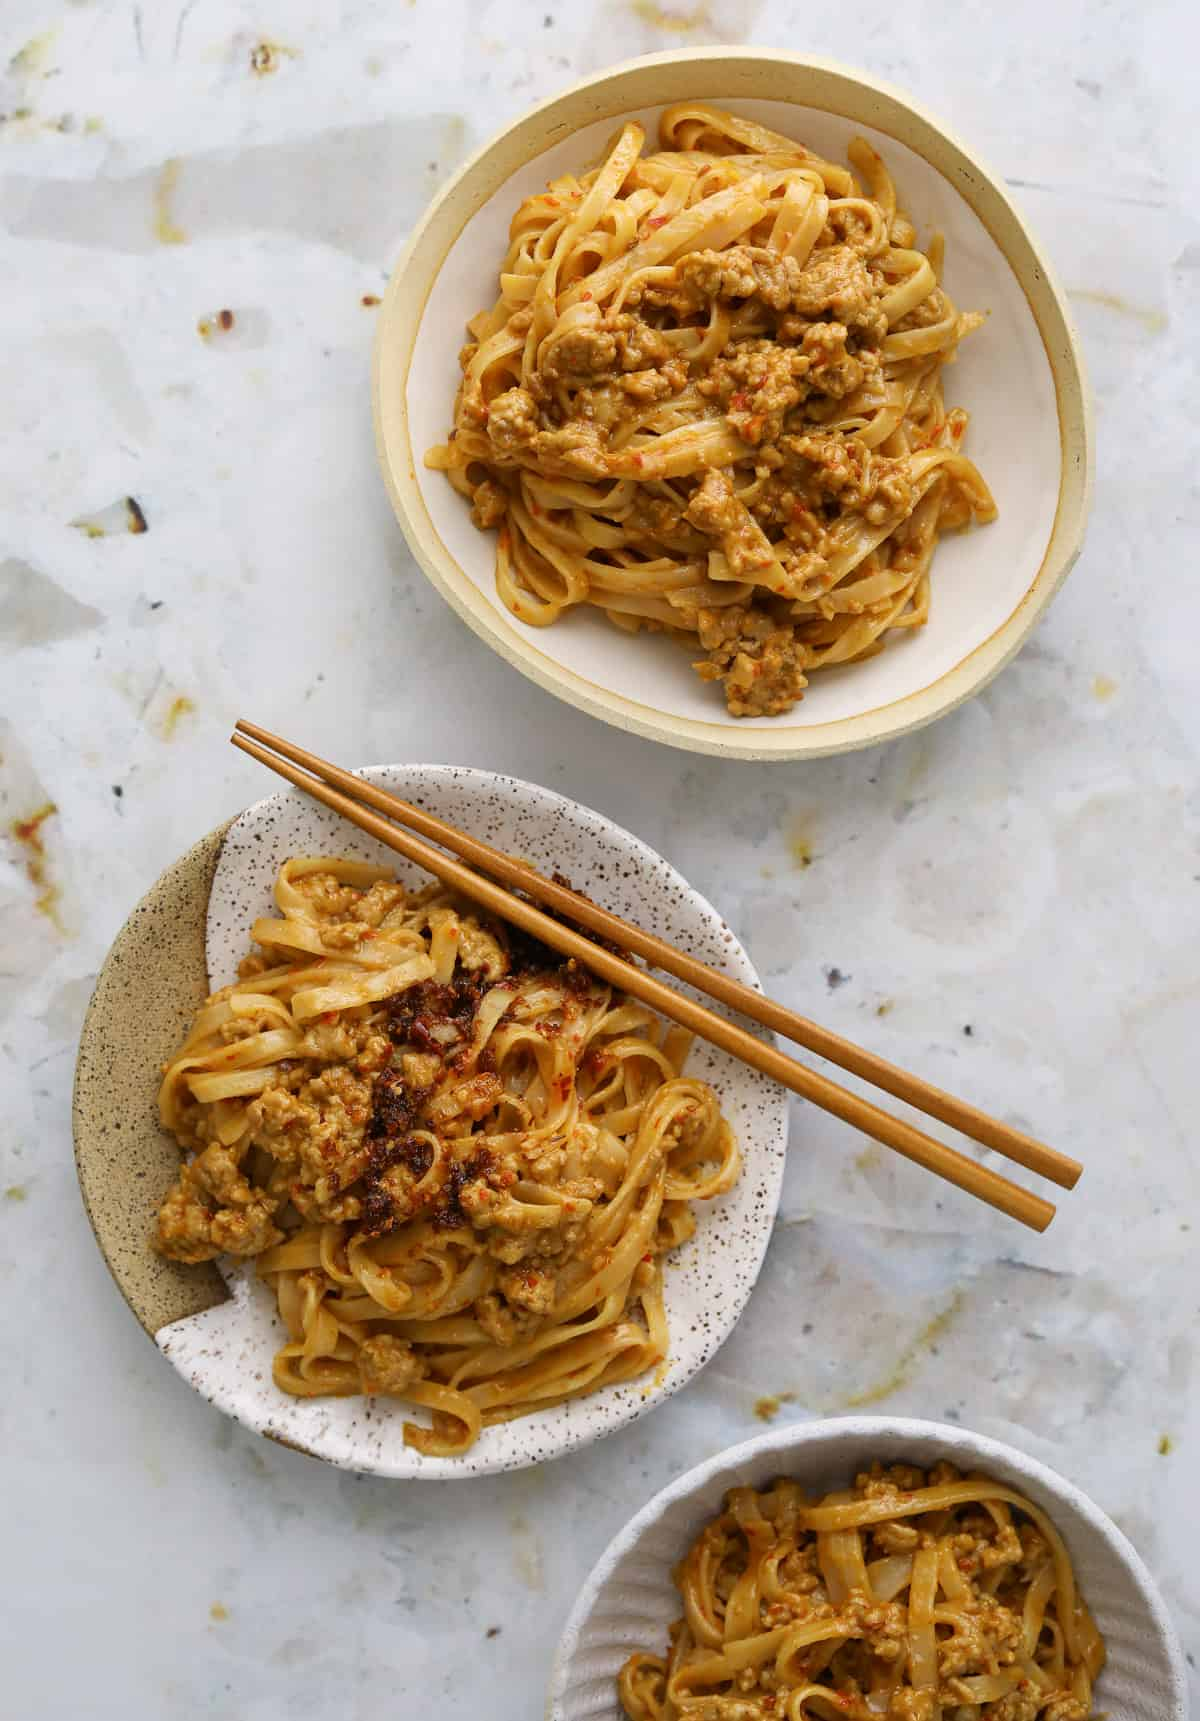 two bowls of spicy pork and peanut noodles in speckled ceramic bowls with wooden chopsticks on a stone marble background